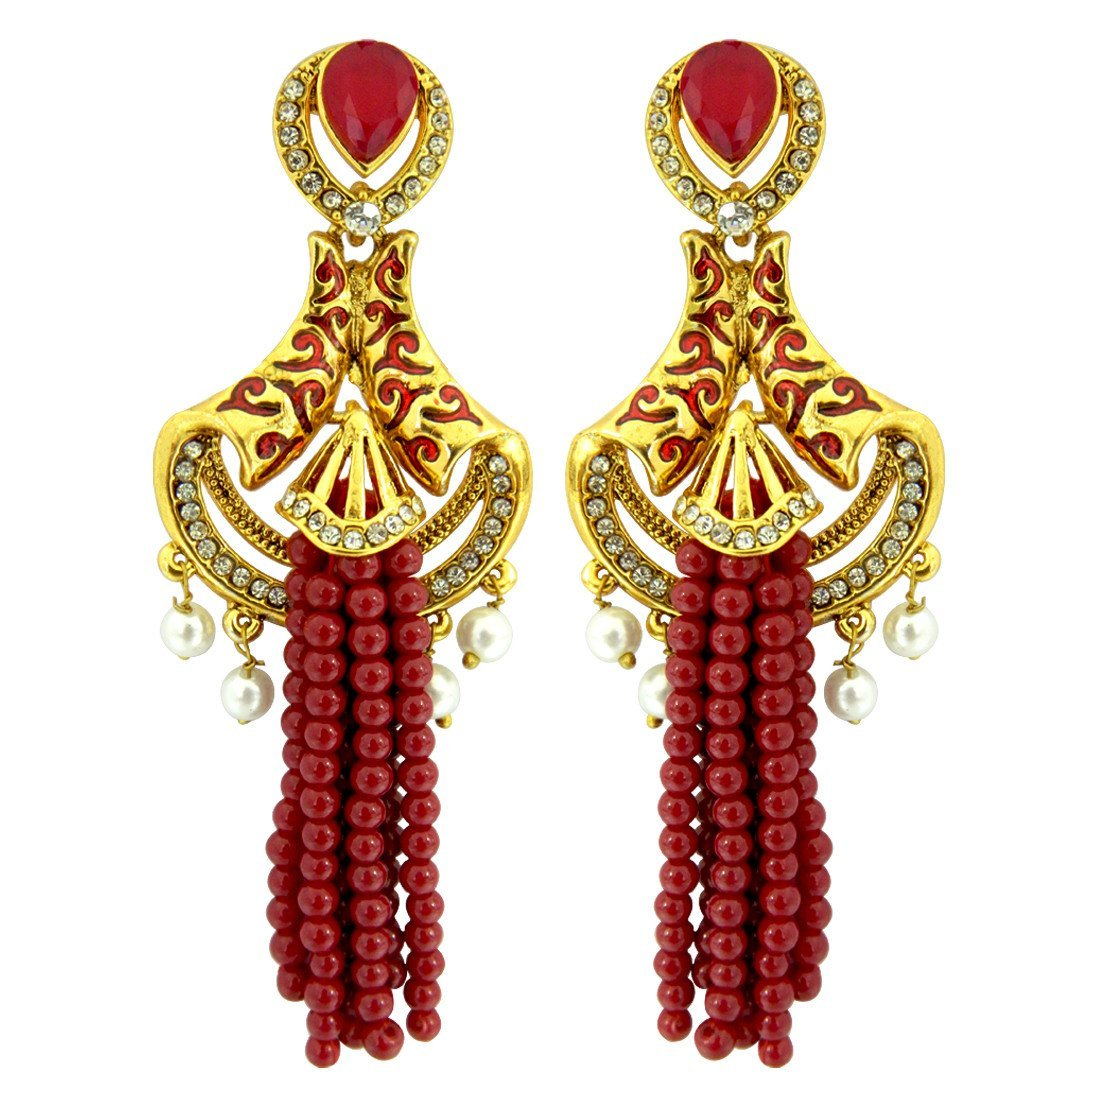 Beaded Tassel Meenakari Earrings